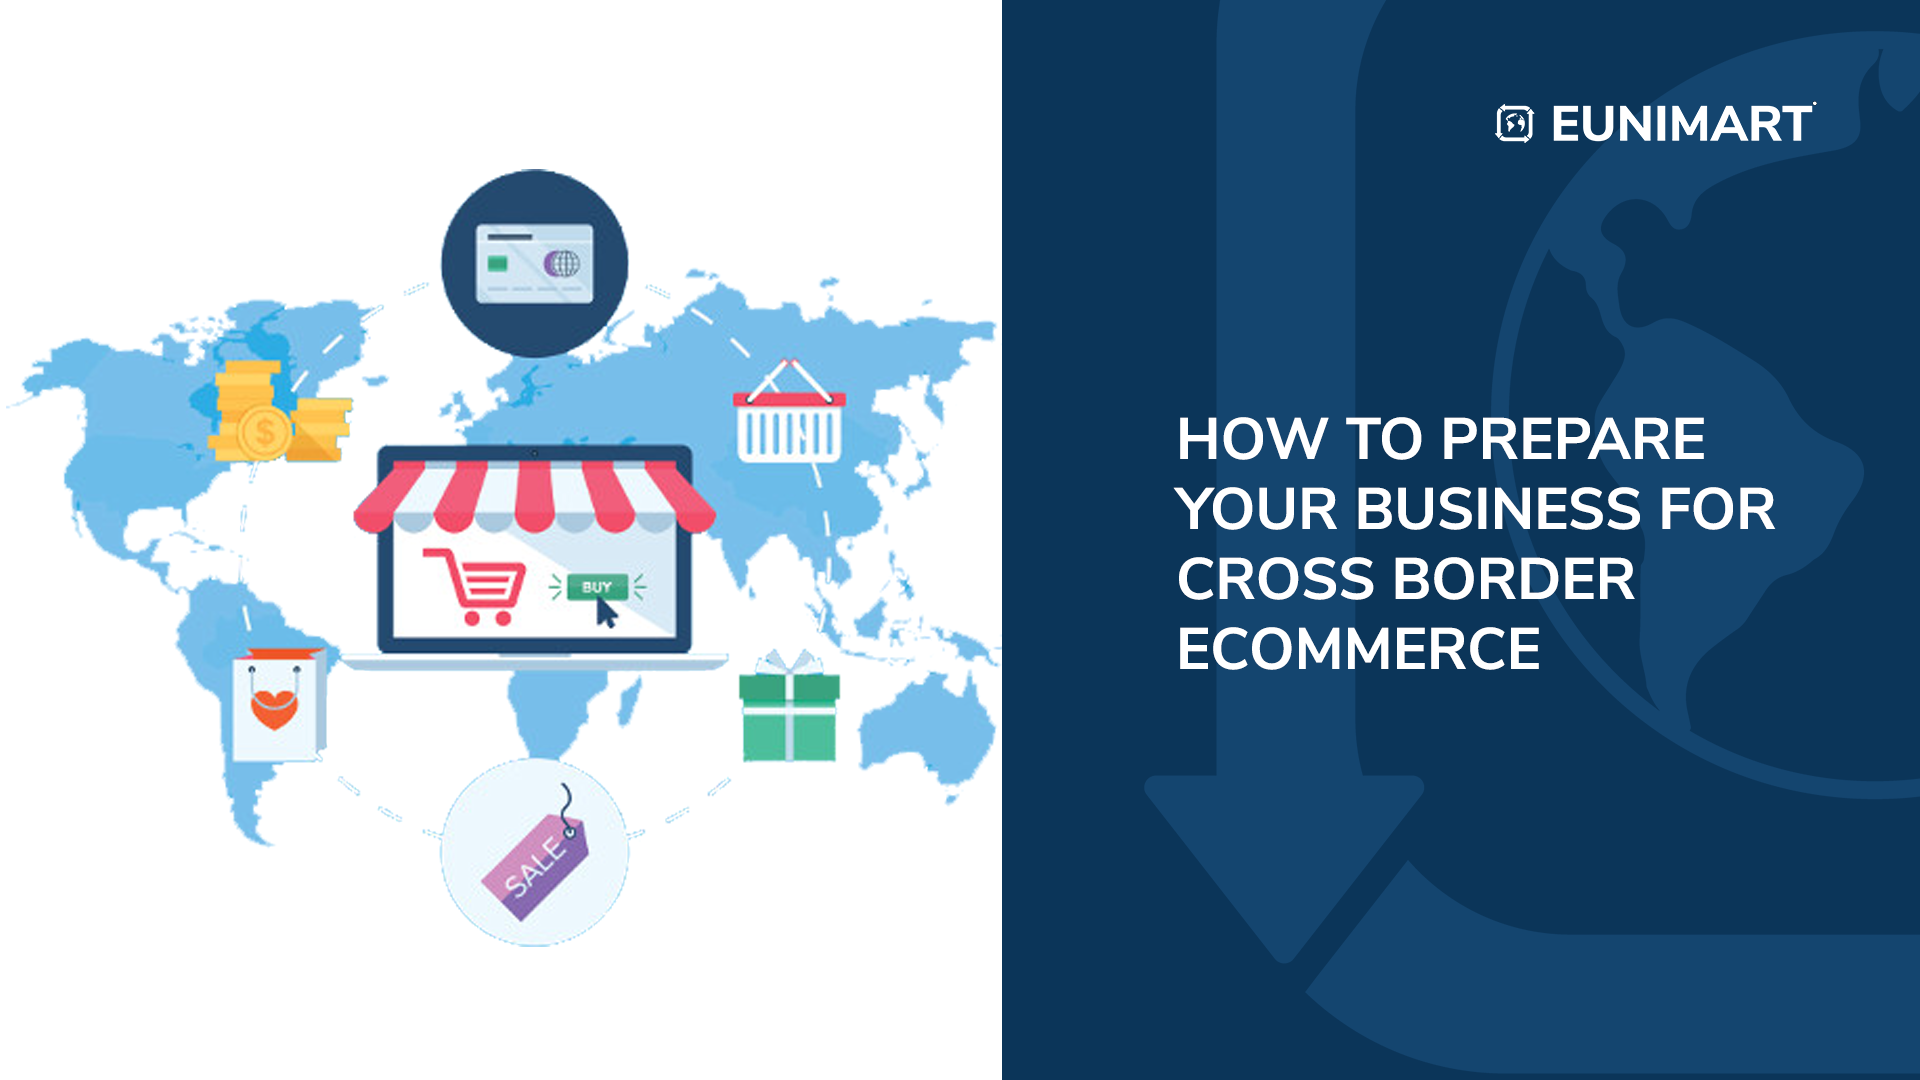 How to Prepare your Business for Cross border eCommerce